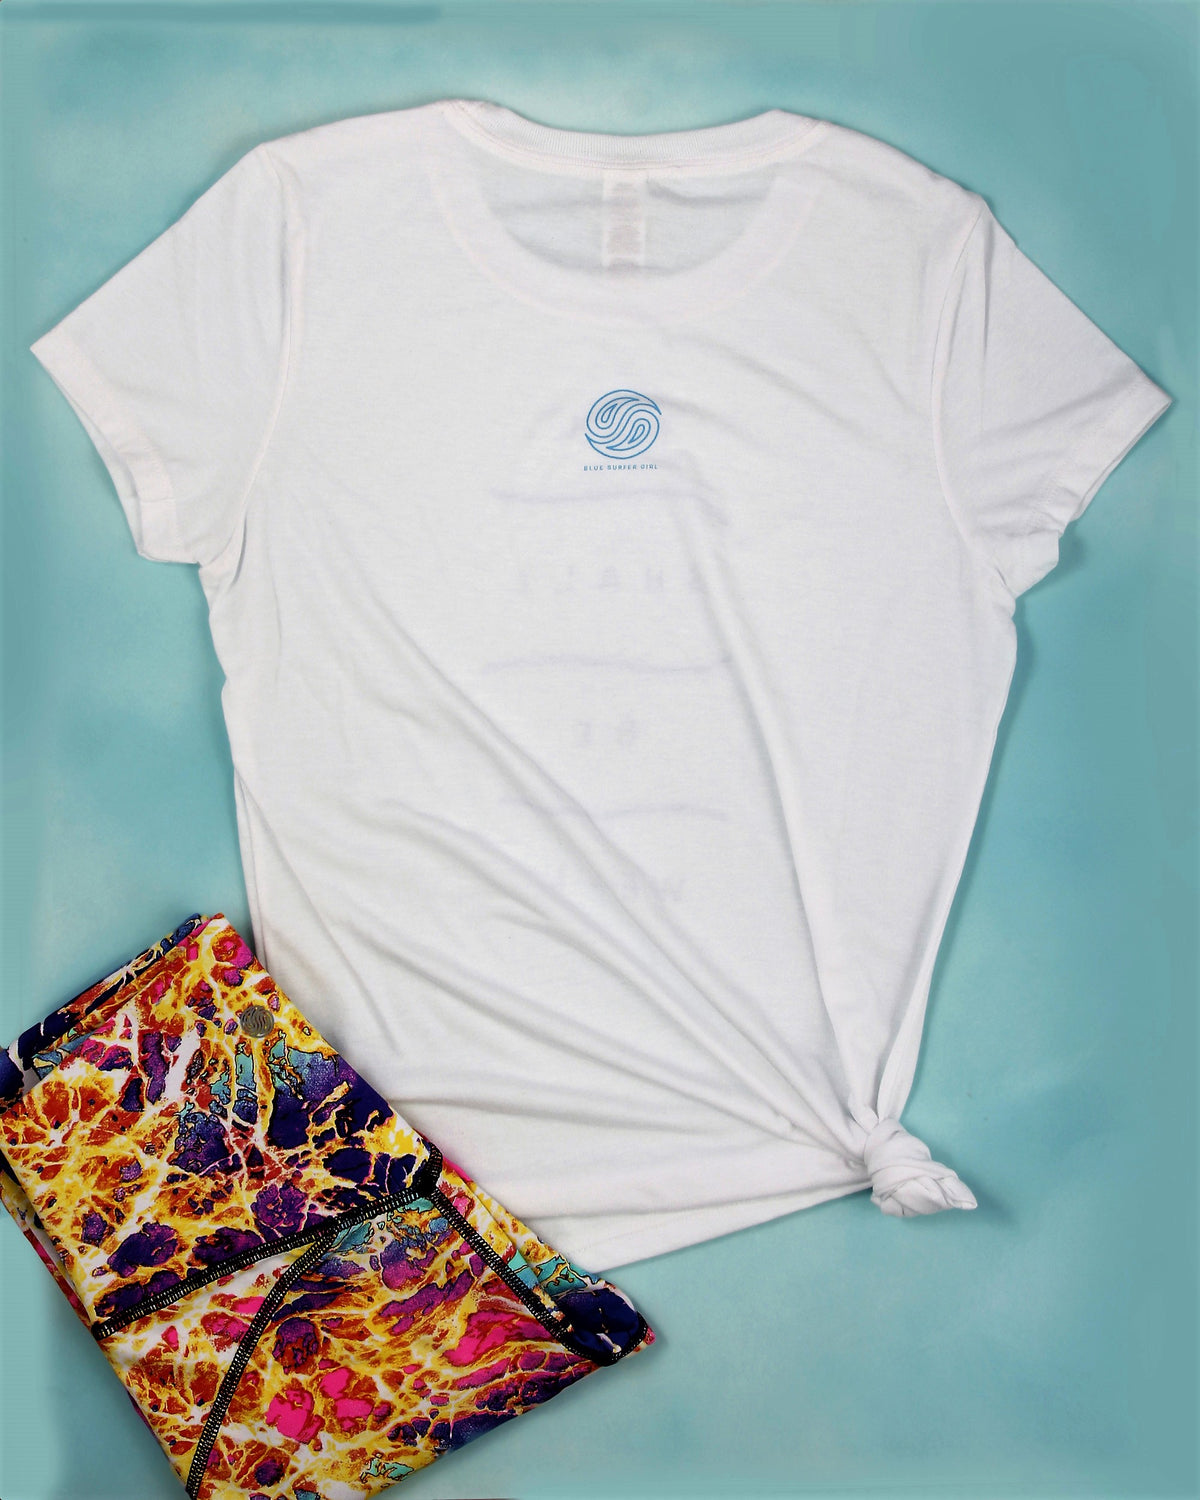 Classic Blue Surfer Girl Tee